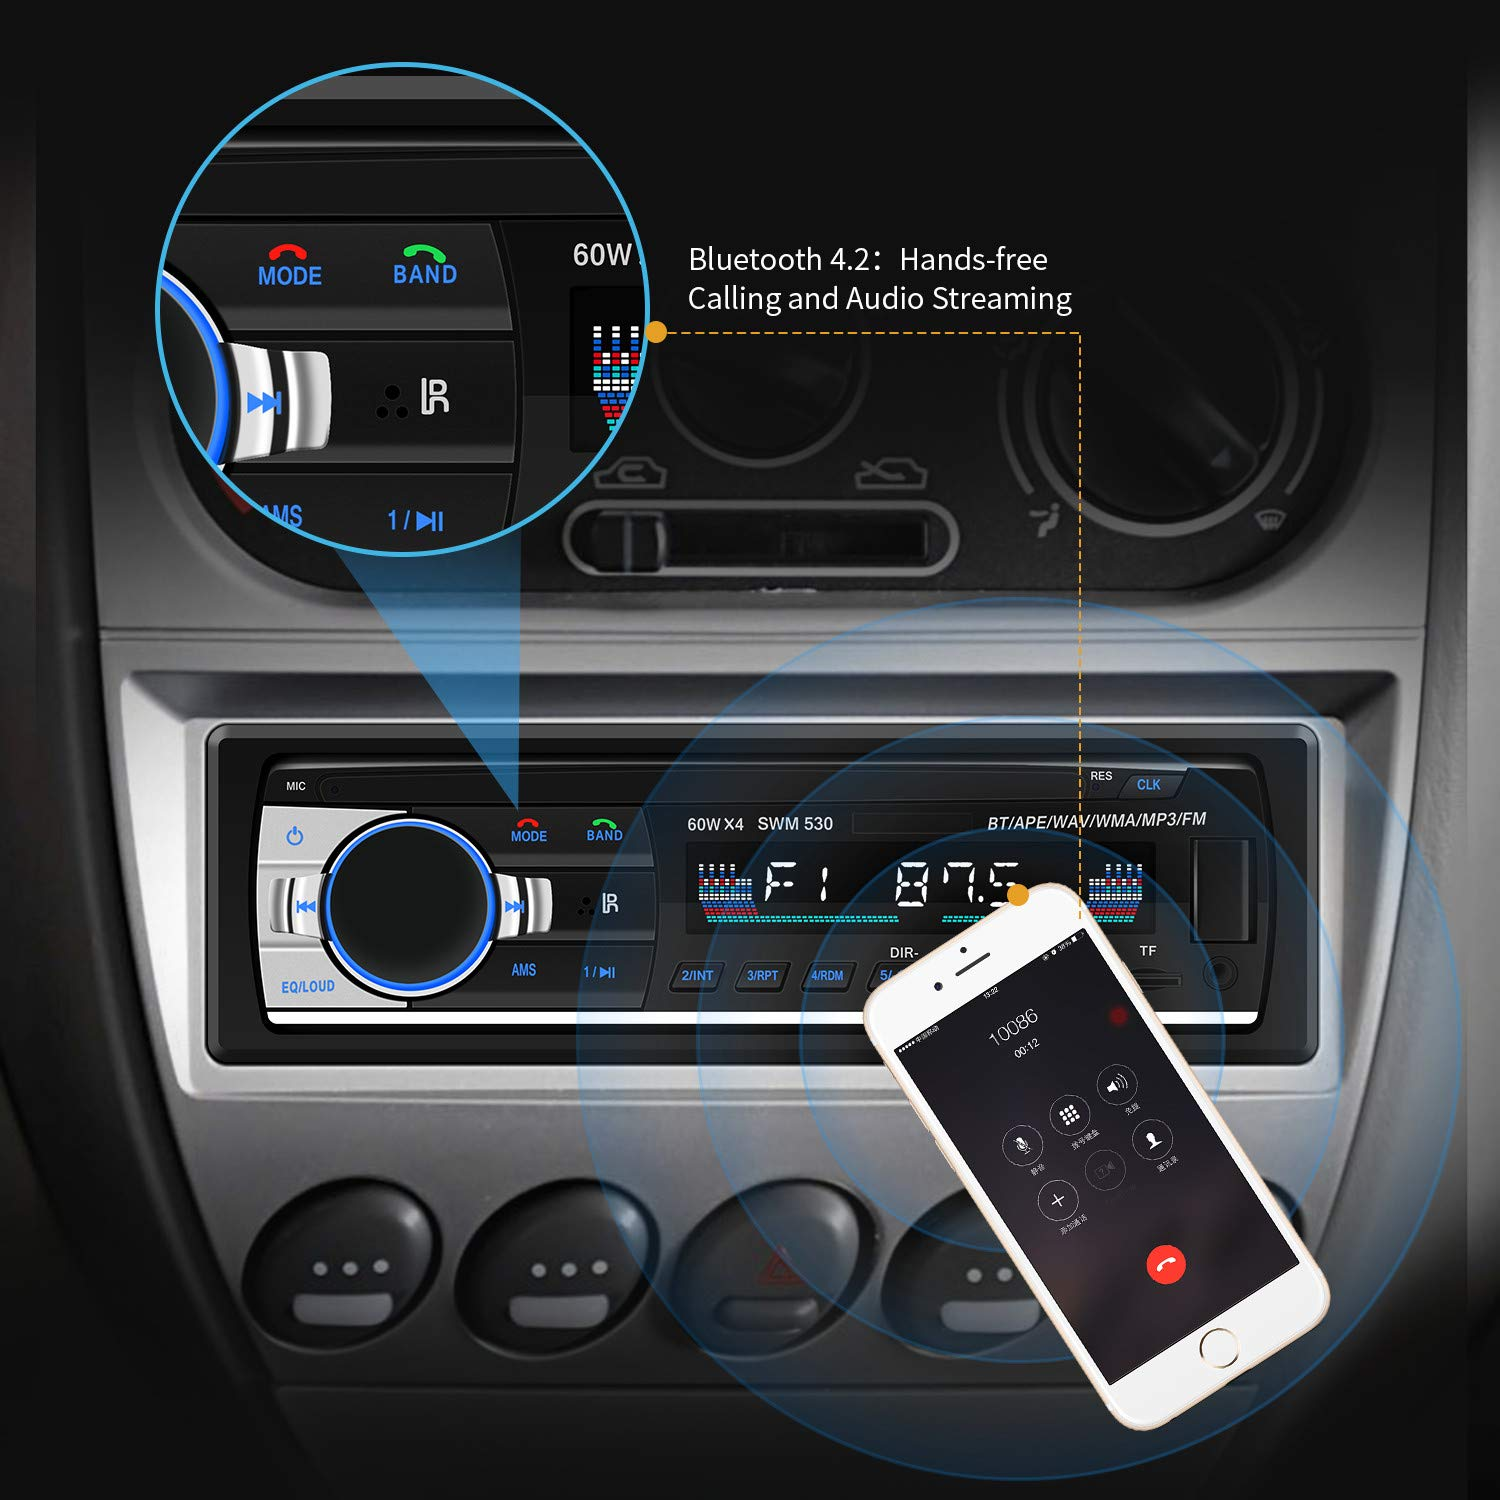 Car Radio AM//FM Media Receiver Built-in Microphone USB Port and SD Card Slot CENXINY Single DIN MP3 Car Stereo Receiver with Bluetooth 4.2